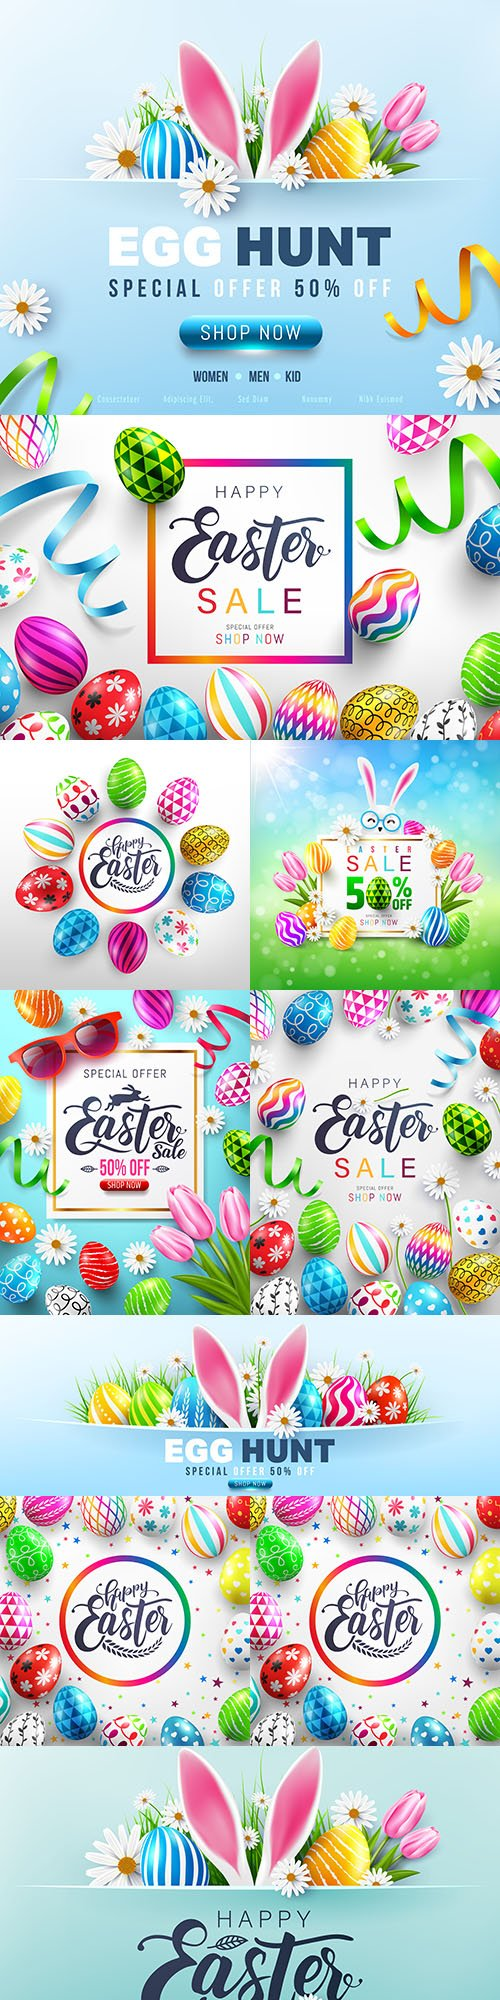 Easter eggs and flower sale banner template